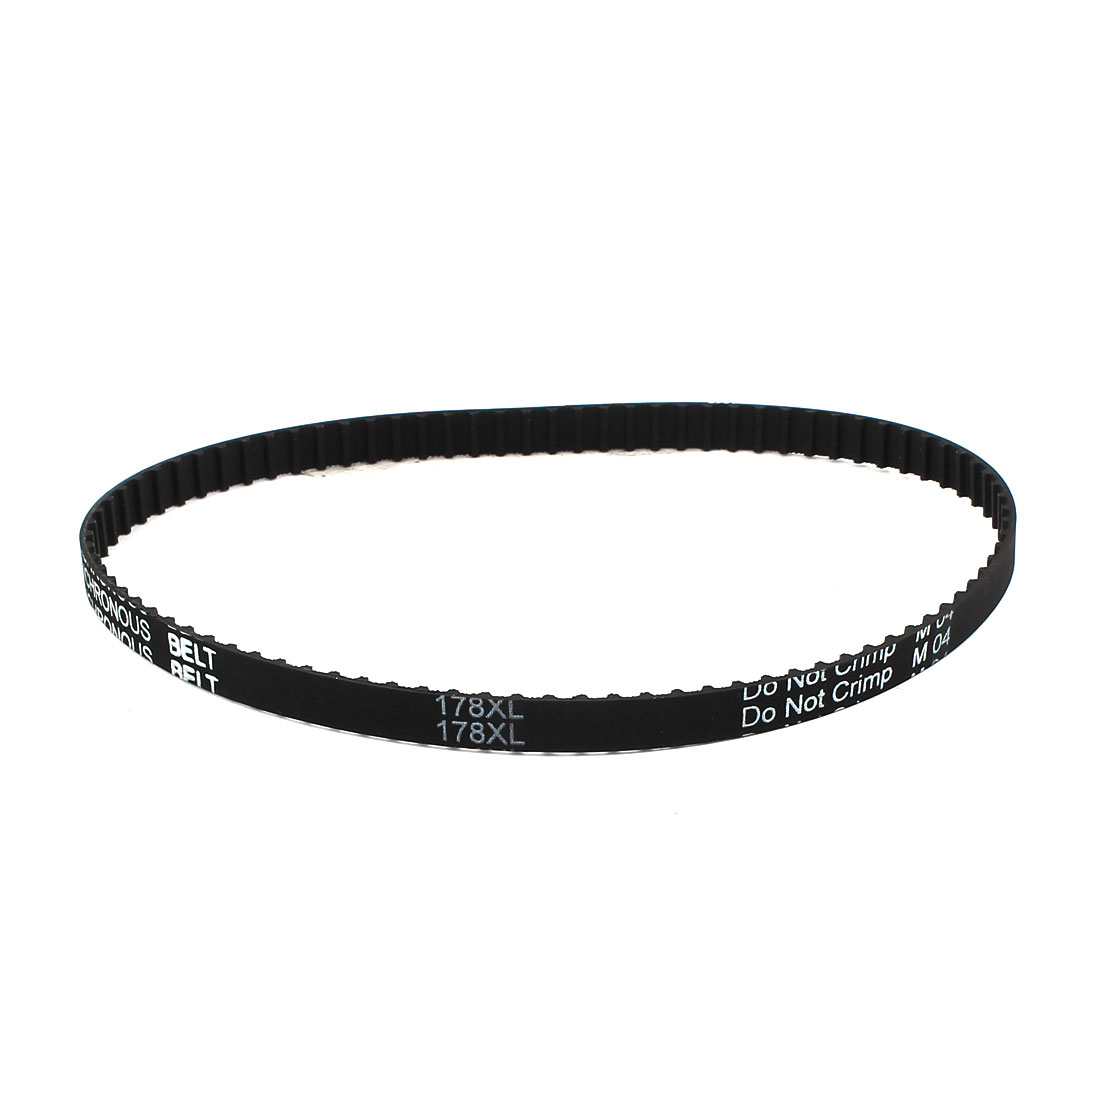 Table Saw Rubber Timing Belt 89 Teeth 9.5mm Width 5.08mm Pitch 178XL 037